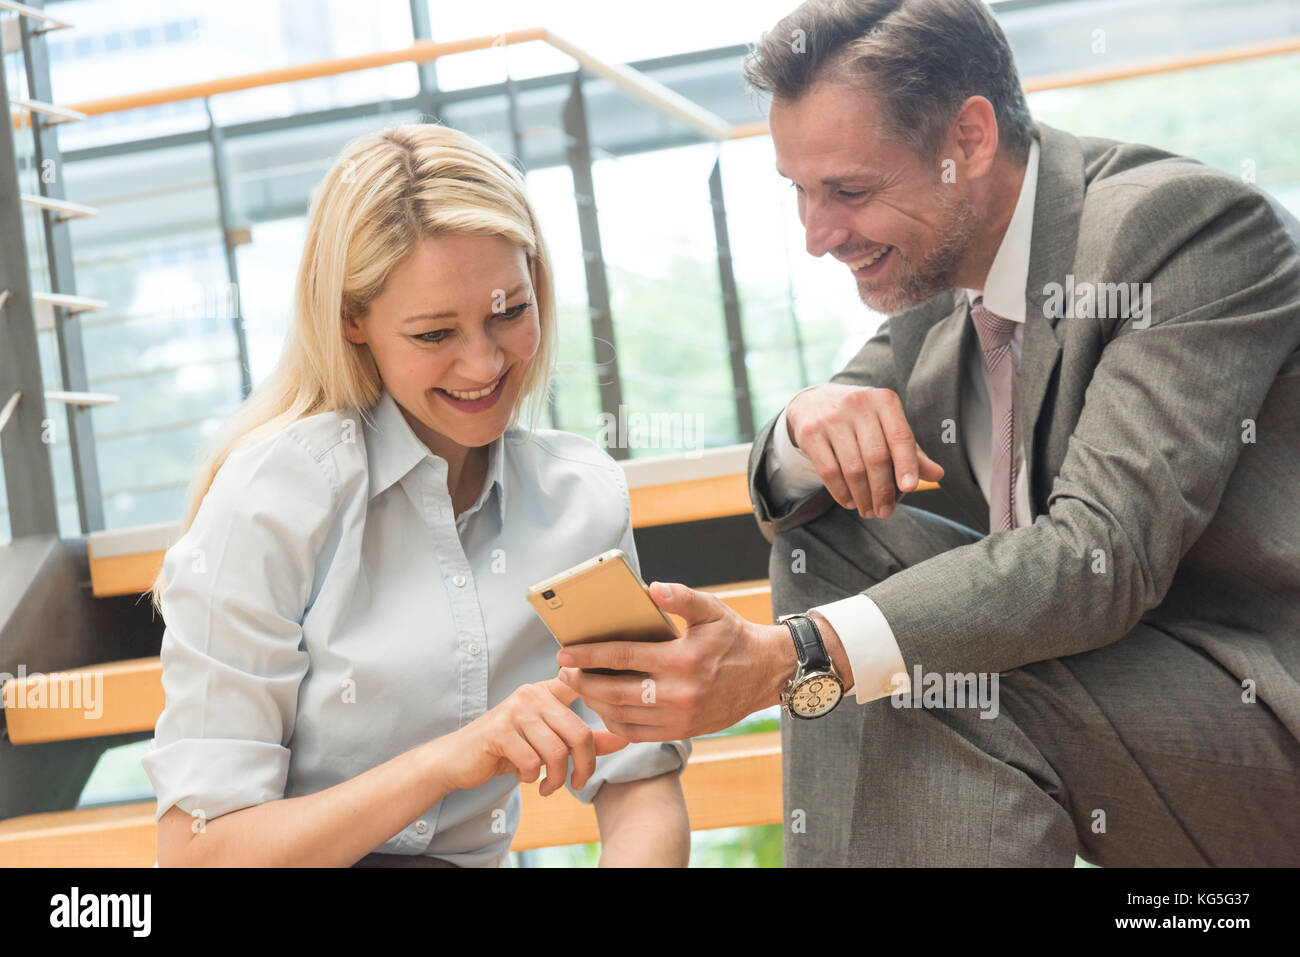 Business people, man and woman with smartphone sit laughingly on stairs - Stock Image